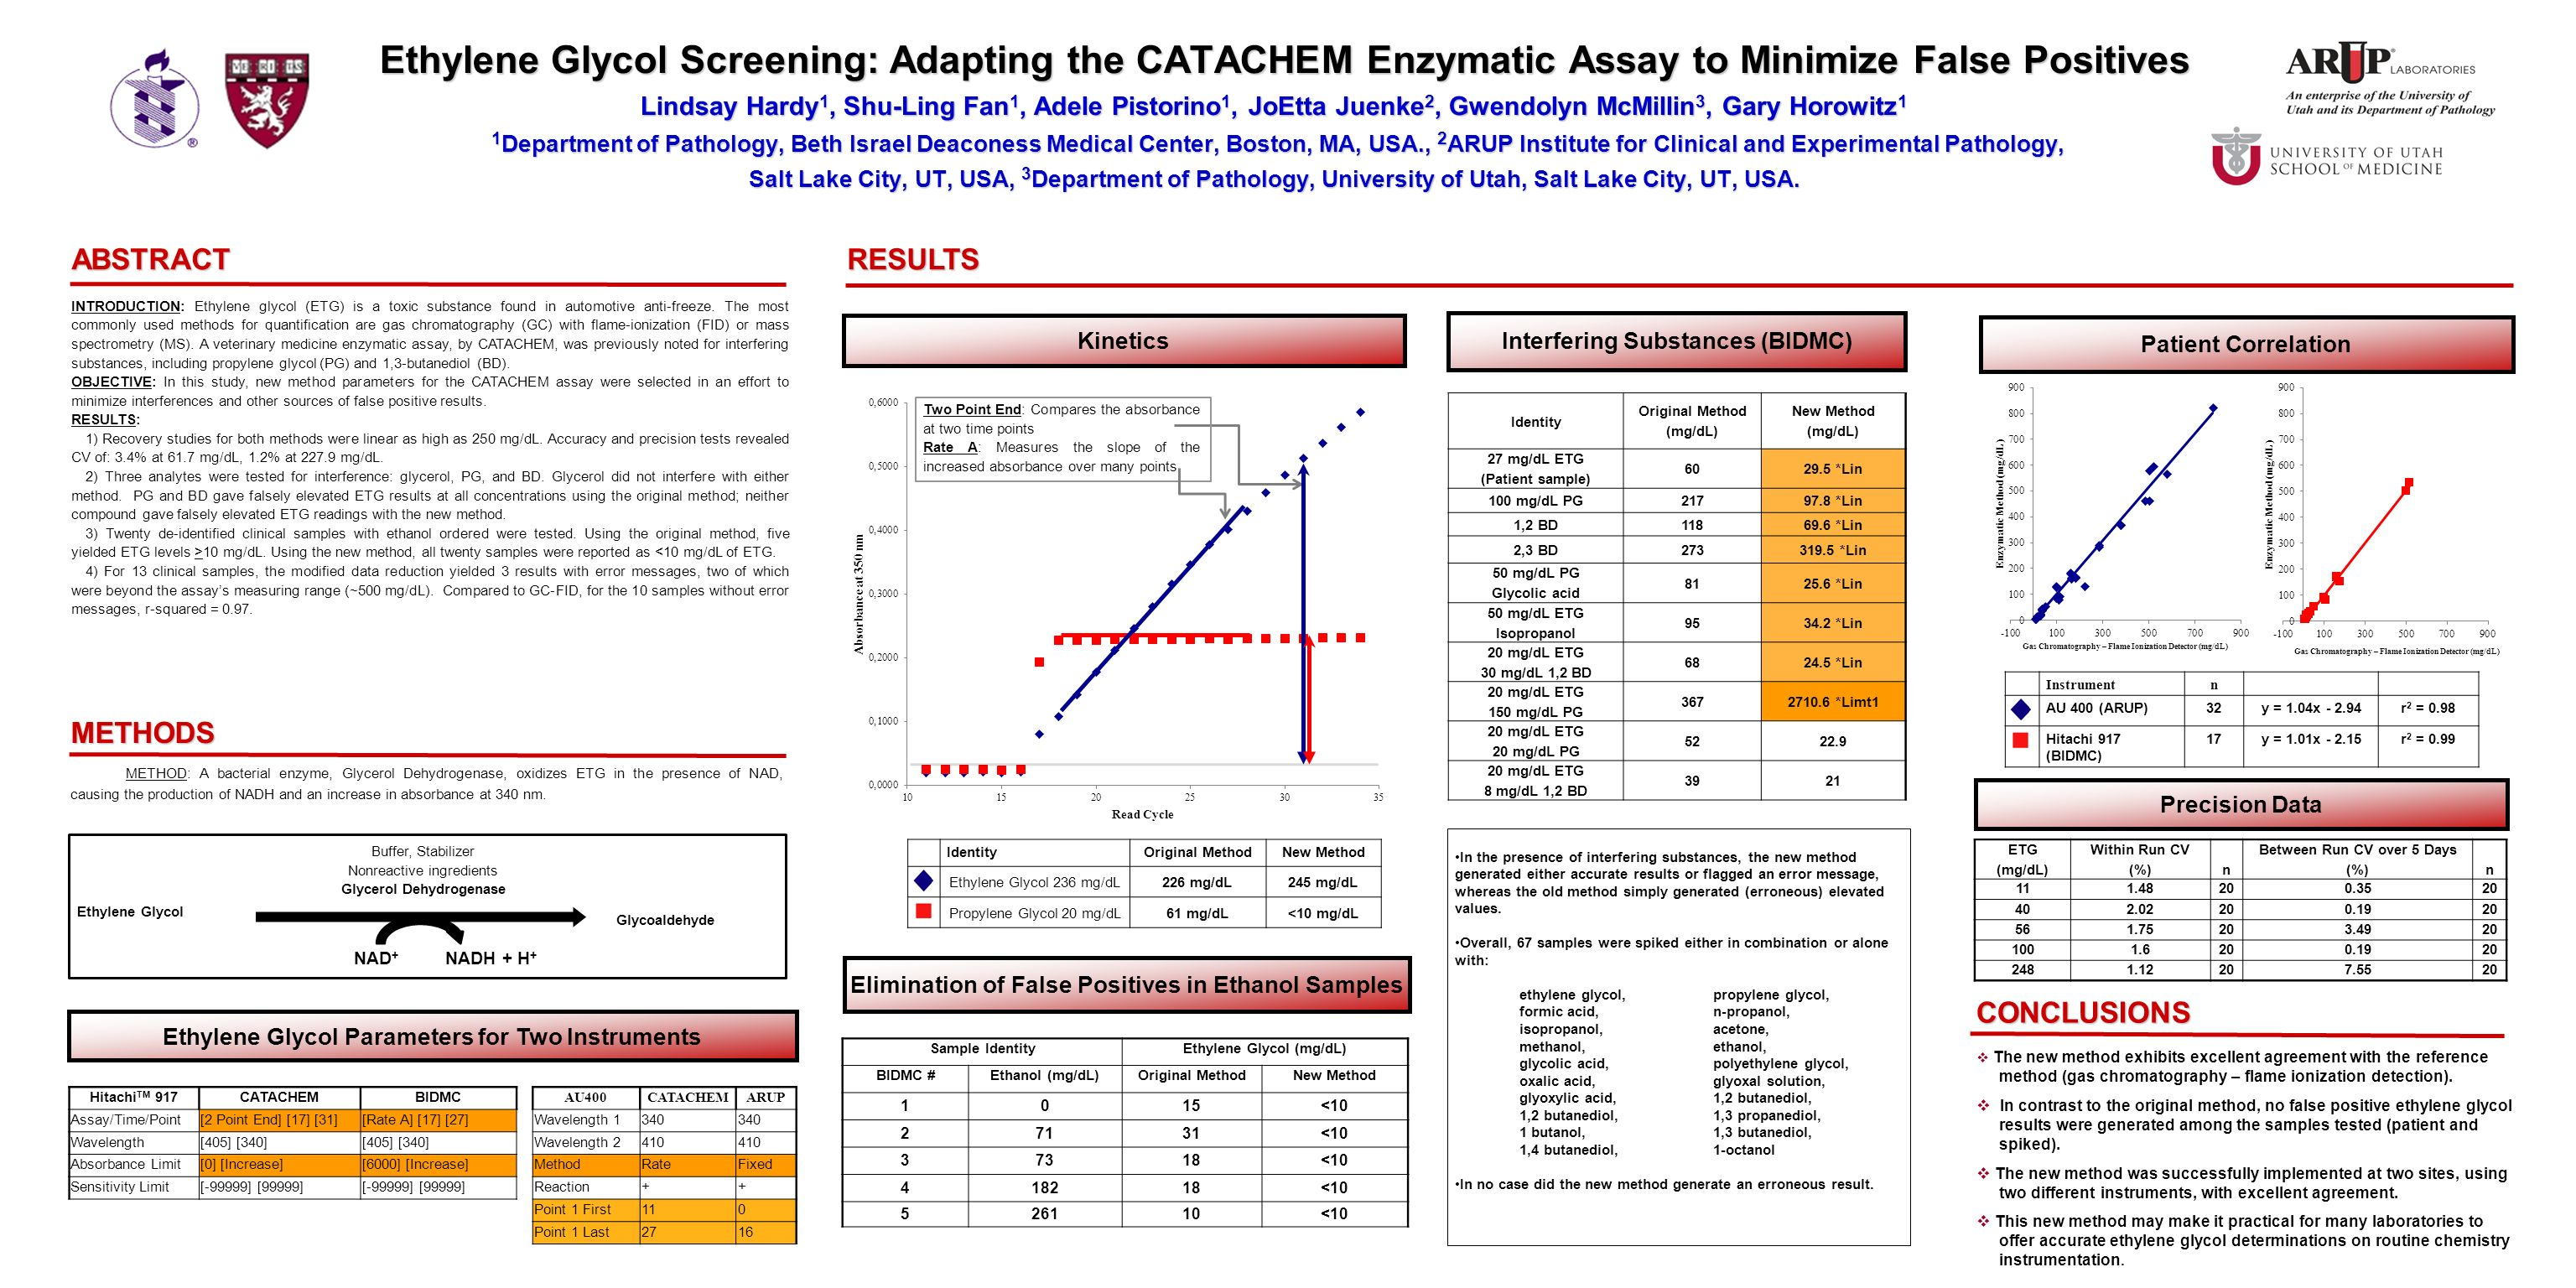 Ethylene Glycol Screening: Adapting the CATACHEM Enzymatic Assay to Minimize False Positives Lindsay Hardy 1, Shu-Ling Fan 1, Adele Pistorino 1, JoEtta Juenke 2, Gwendolyn McMillin 3, Gary Horowitz 1 1 Department of Pathology, Beth Israel Deaconess Medical Center, Boston, MA, USA., 2 ARUP Institute for Clinical and Experimental Pathology, Salt Lake City, UT, USA, 3 Department of Pathology, University of Utah, Salt Lake City, UT, USA.